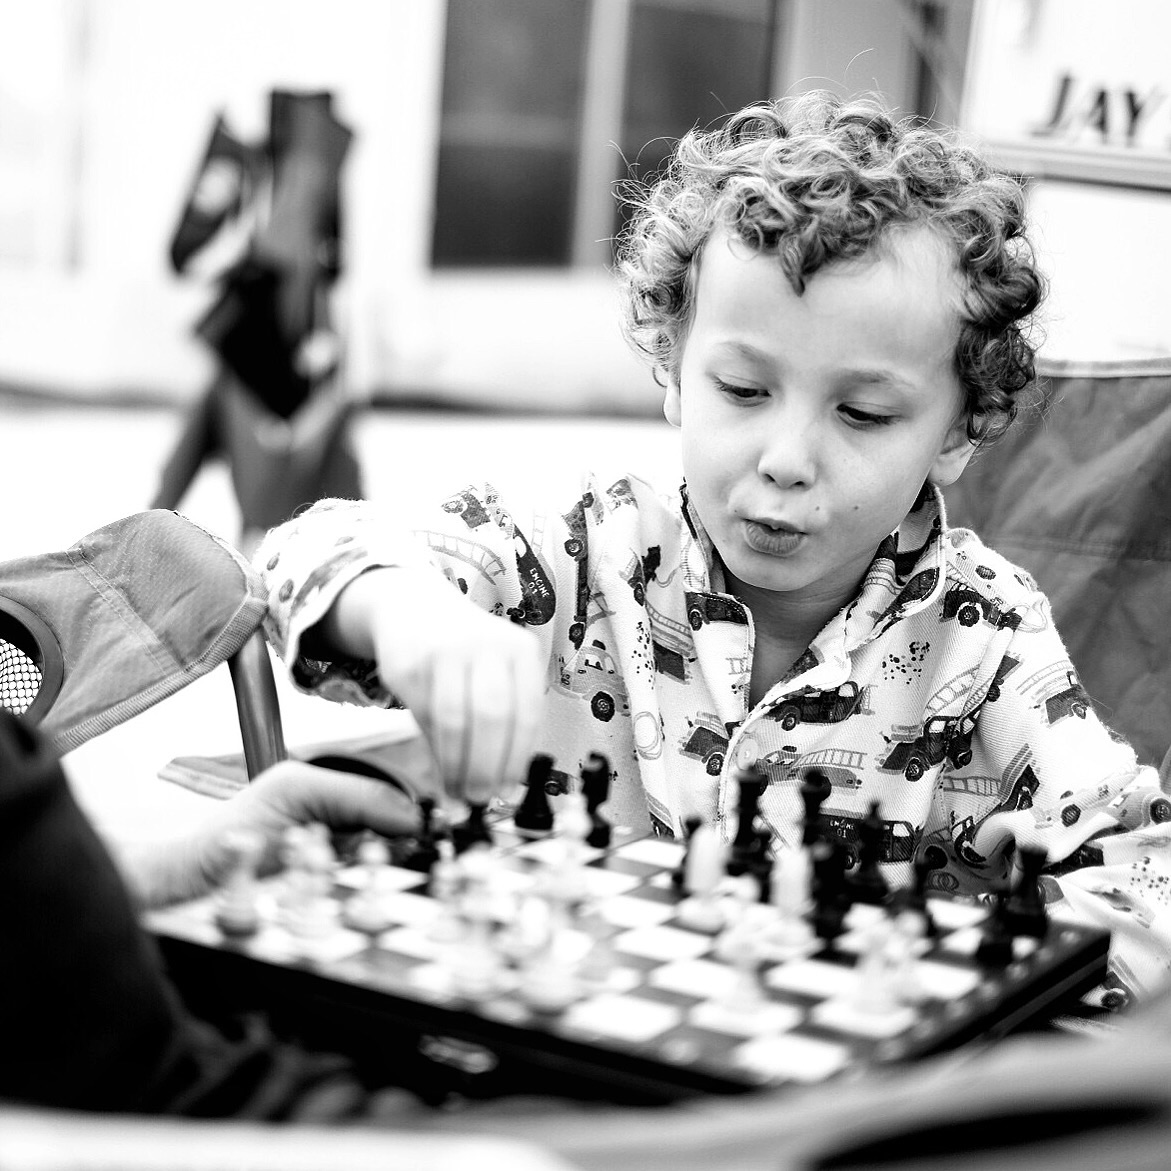 Colin is obsessed with chess right now.